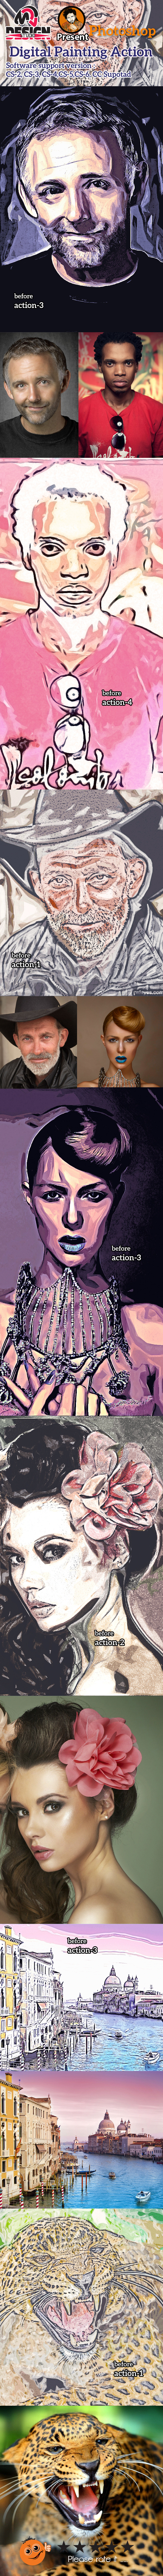 GraphicRiver Digital Painting Action 10880162